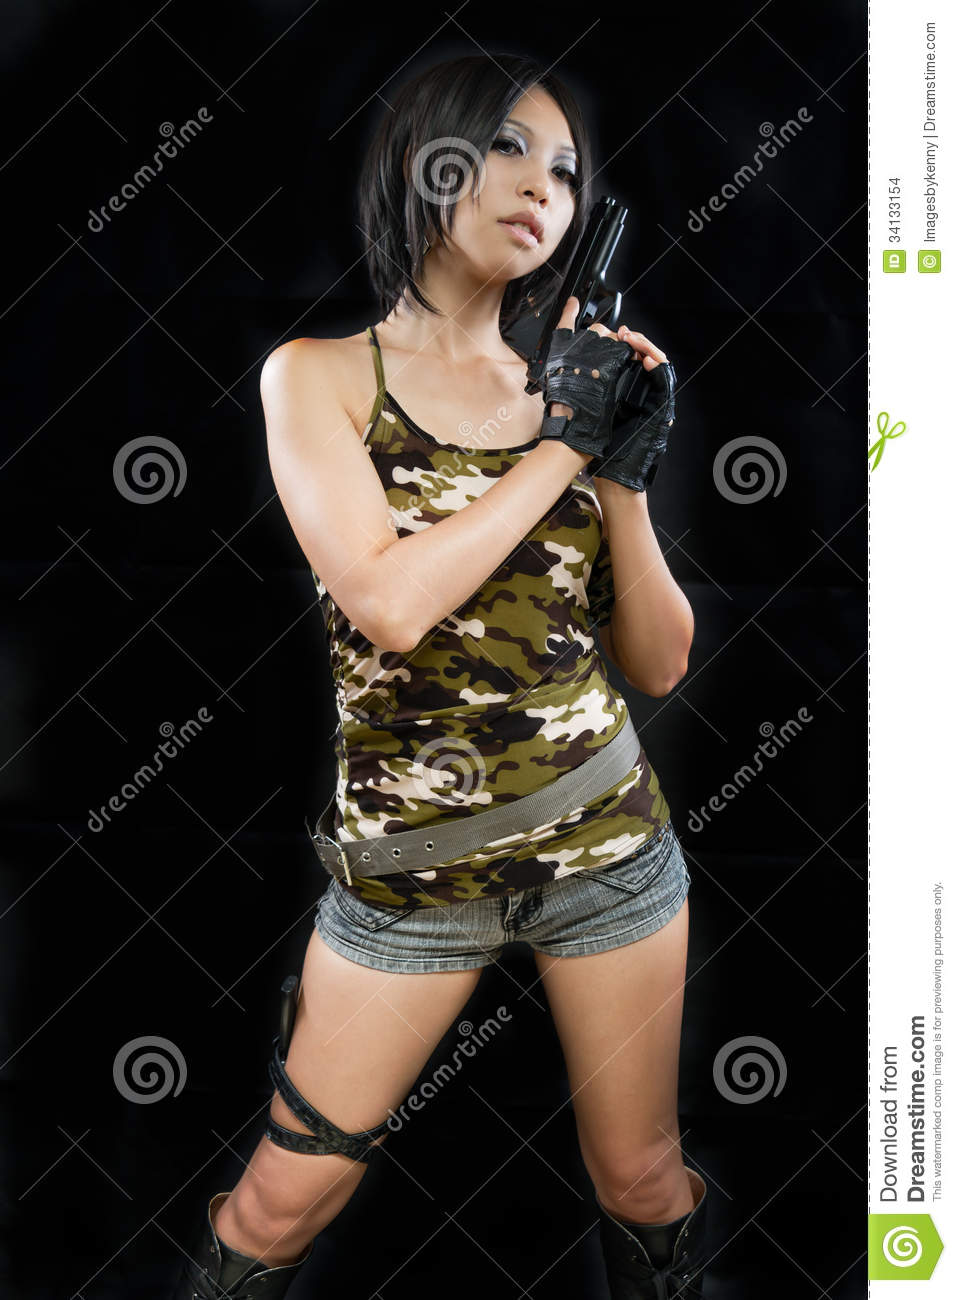 Opinion military naked army girl holding a gun